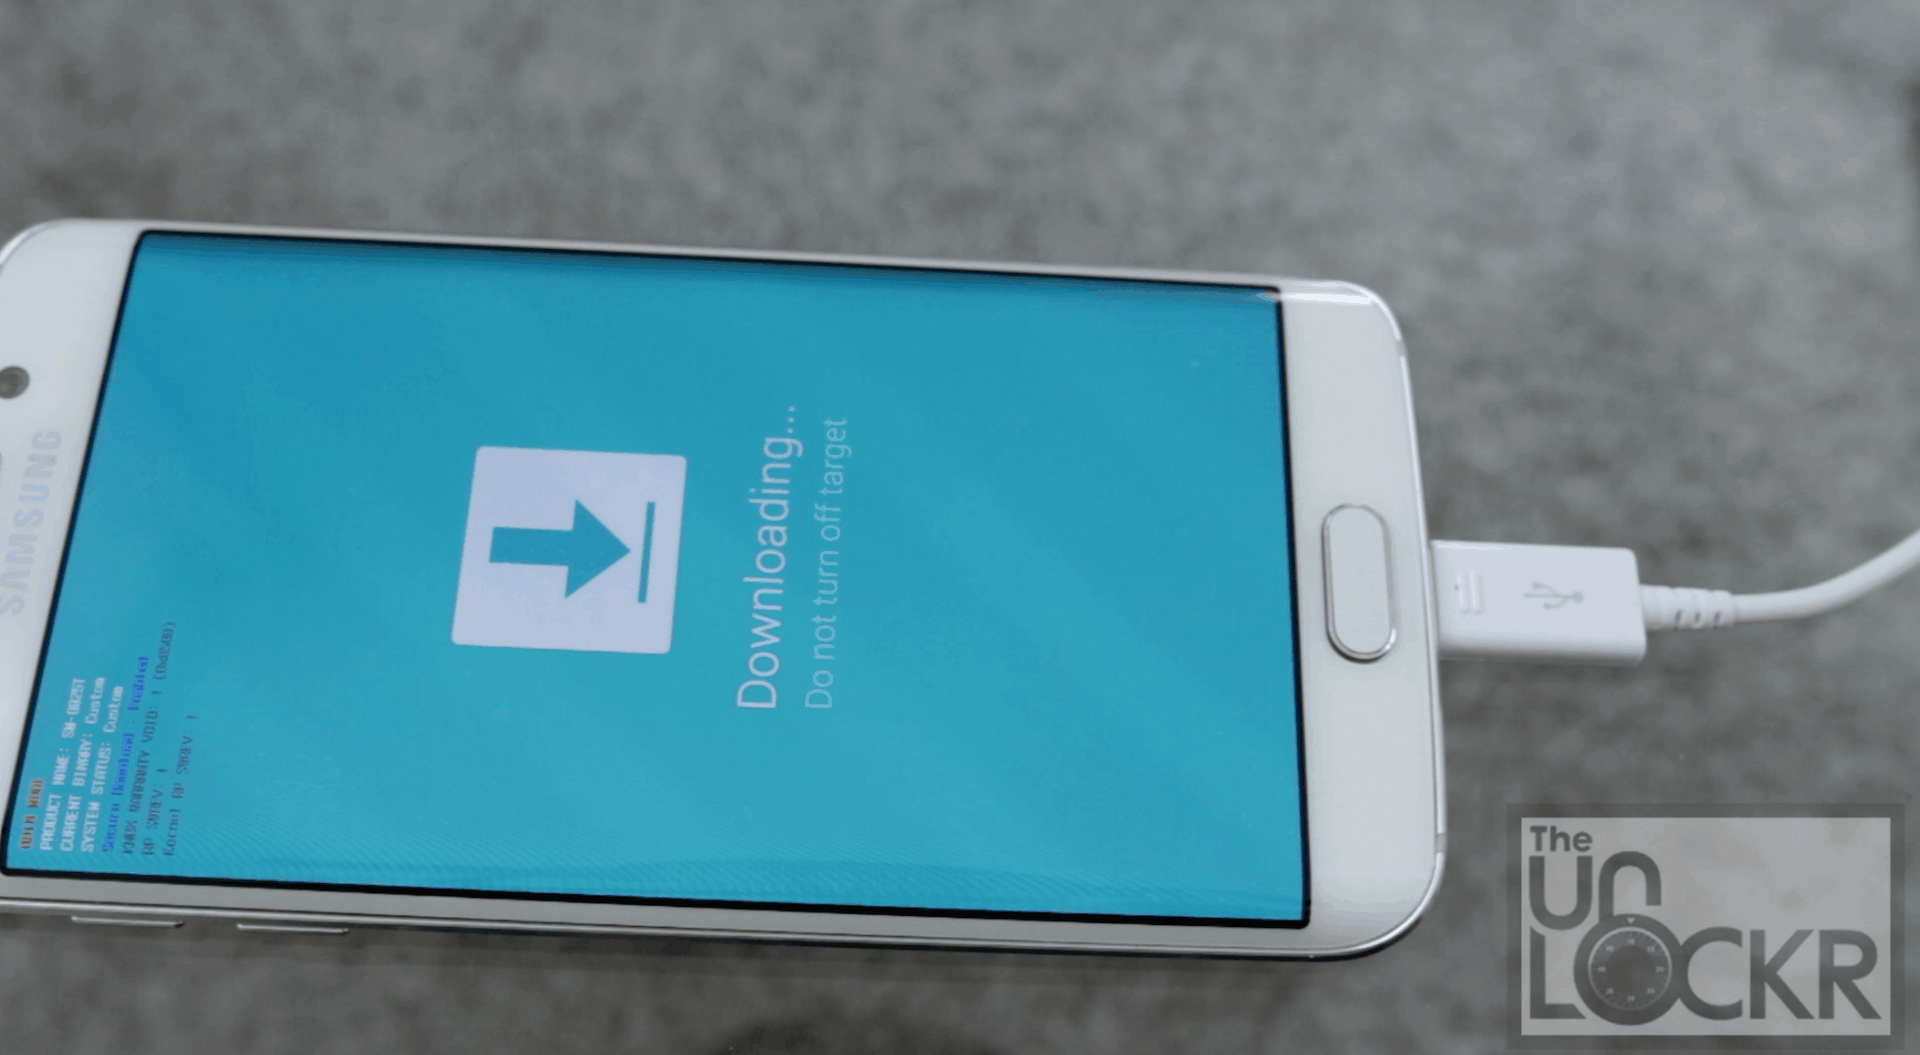 How to Unroot the Samsung Galaxy S6 / Galaxy S6 Edge (Video)